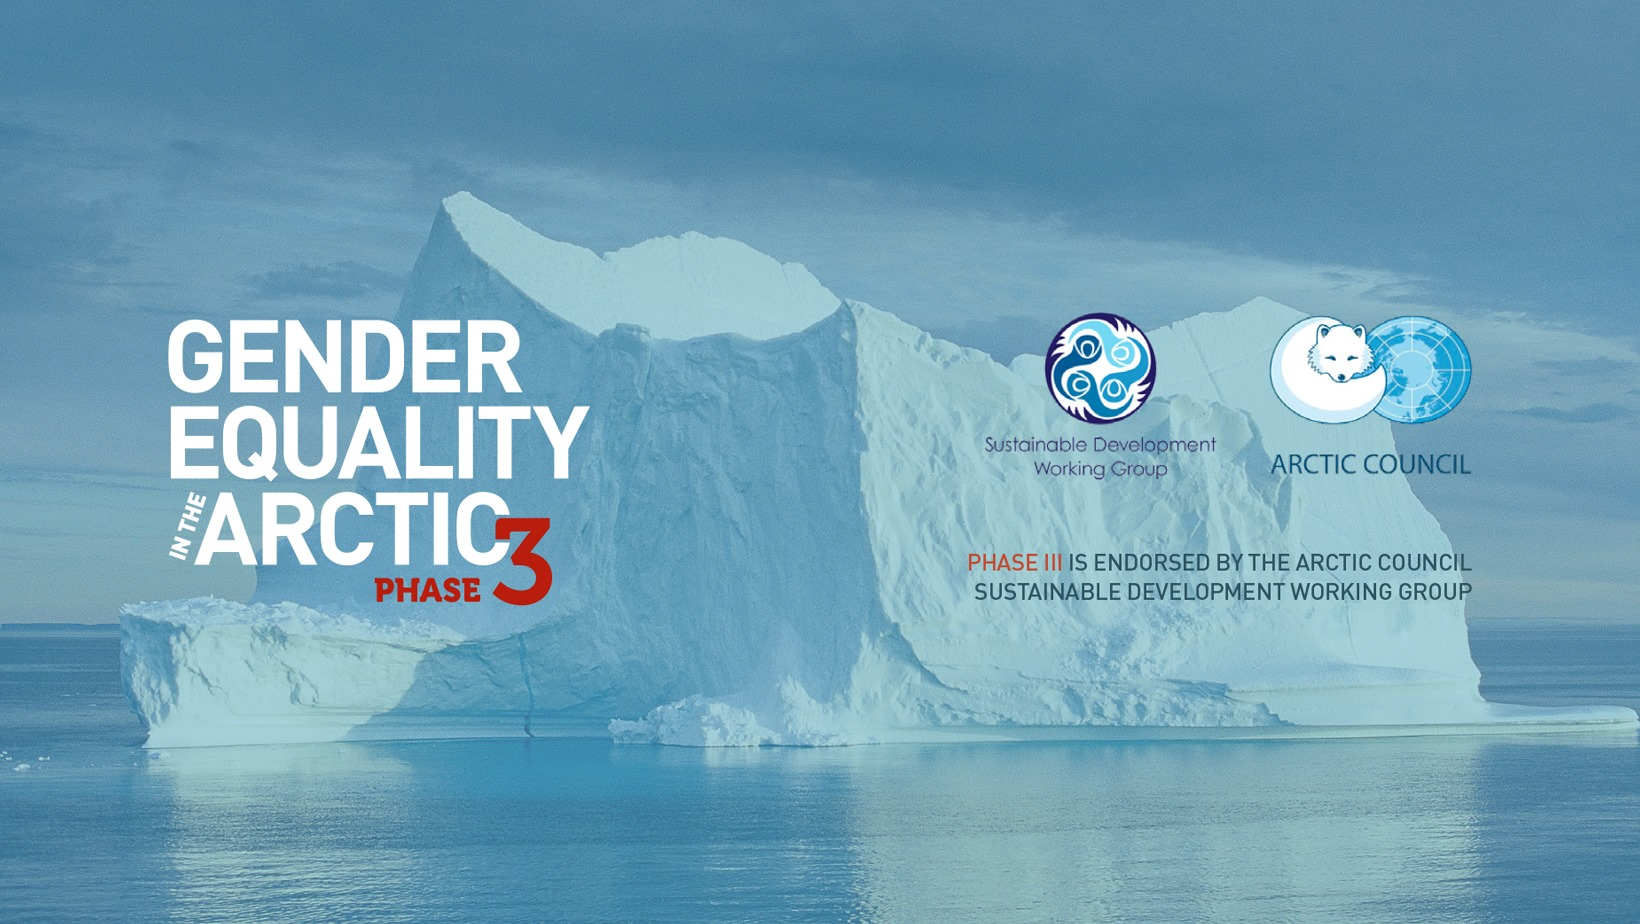 Gender Equality in the Arctic Phase III